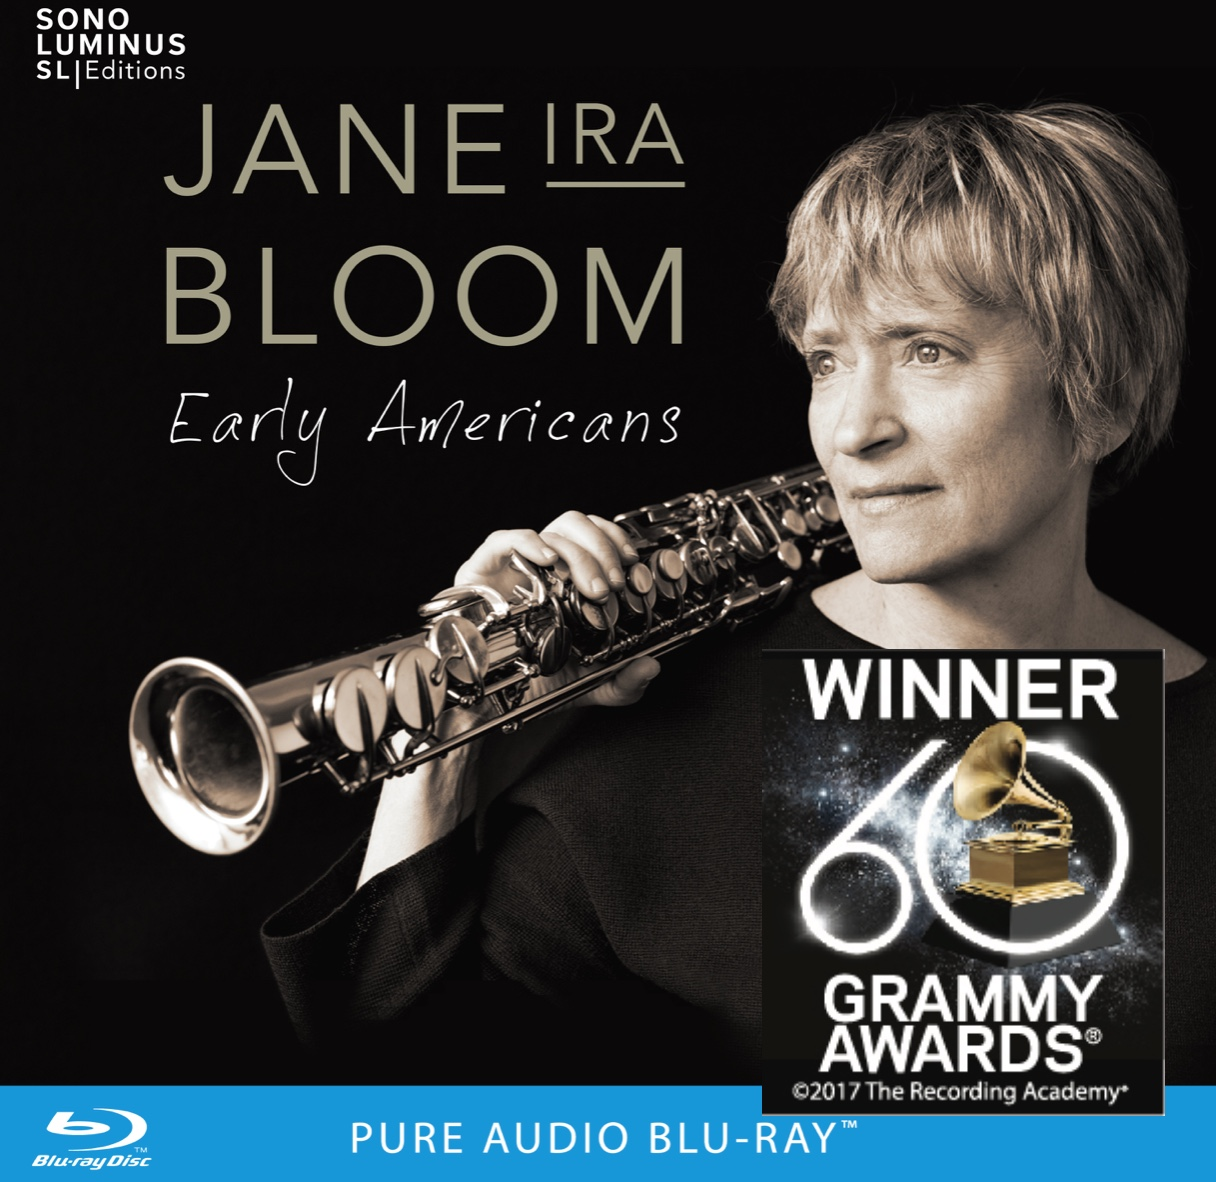 Jane Ira Bloom:  Early Americans in Surround - Grammy Winner for Best Surround Album